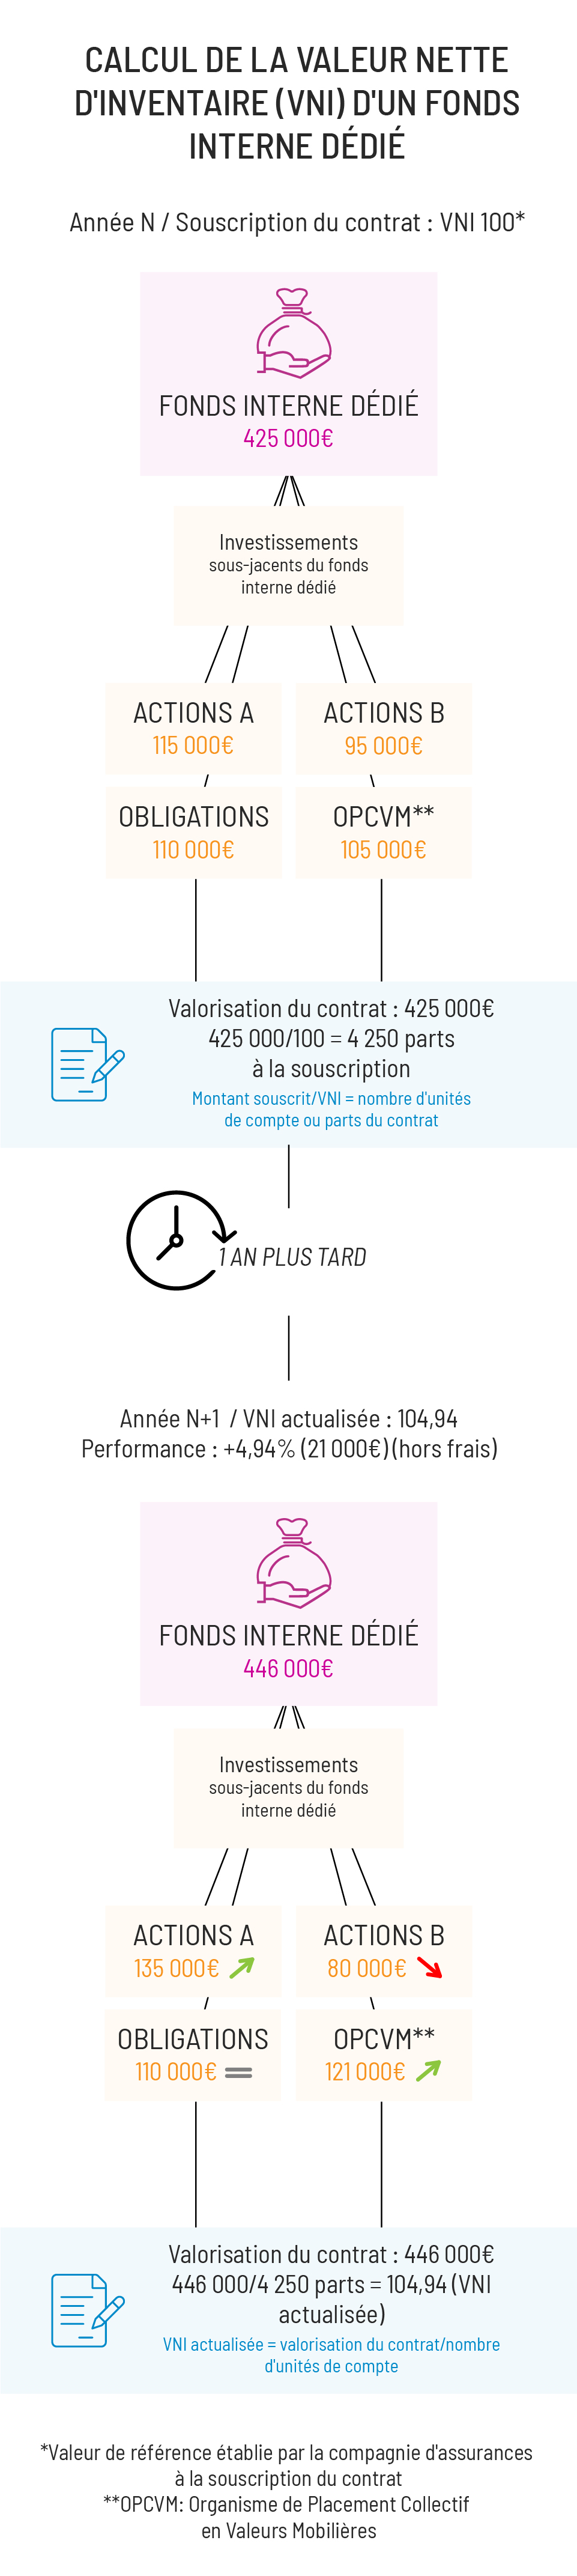 Calcul de la VNI d'un fonds interne dédié mobile